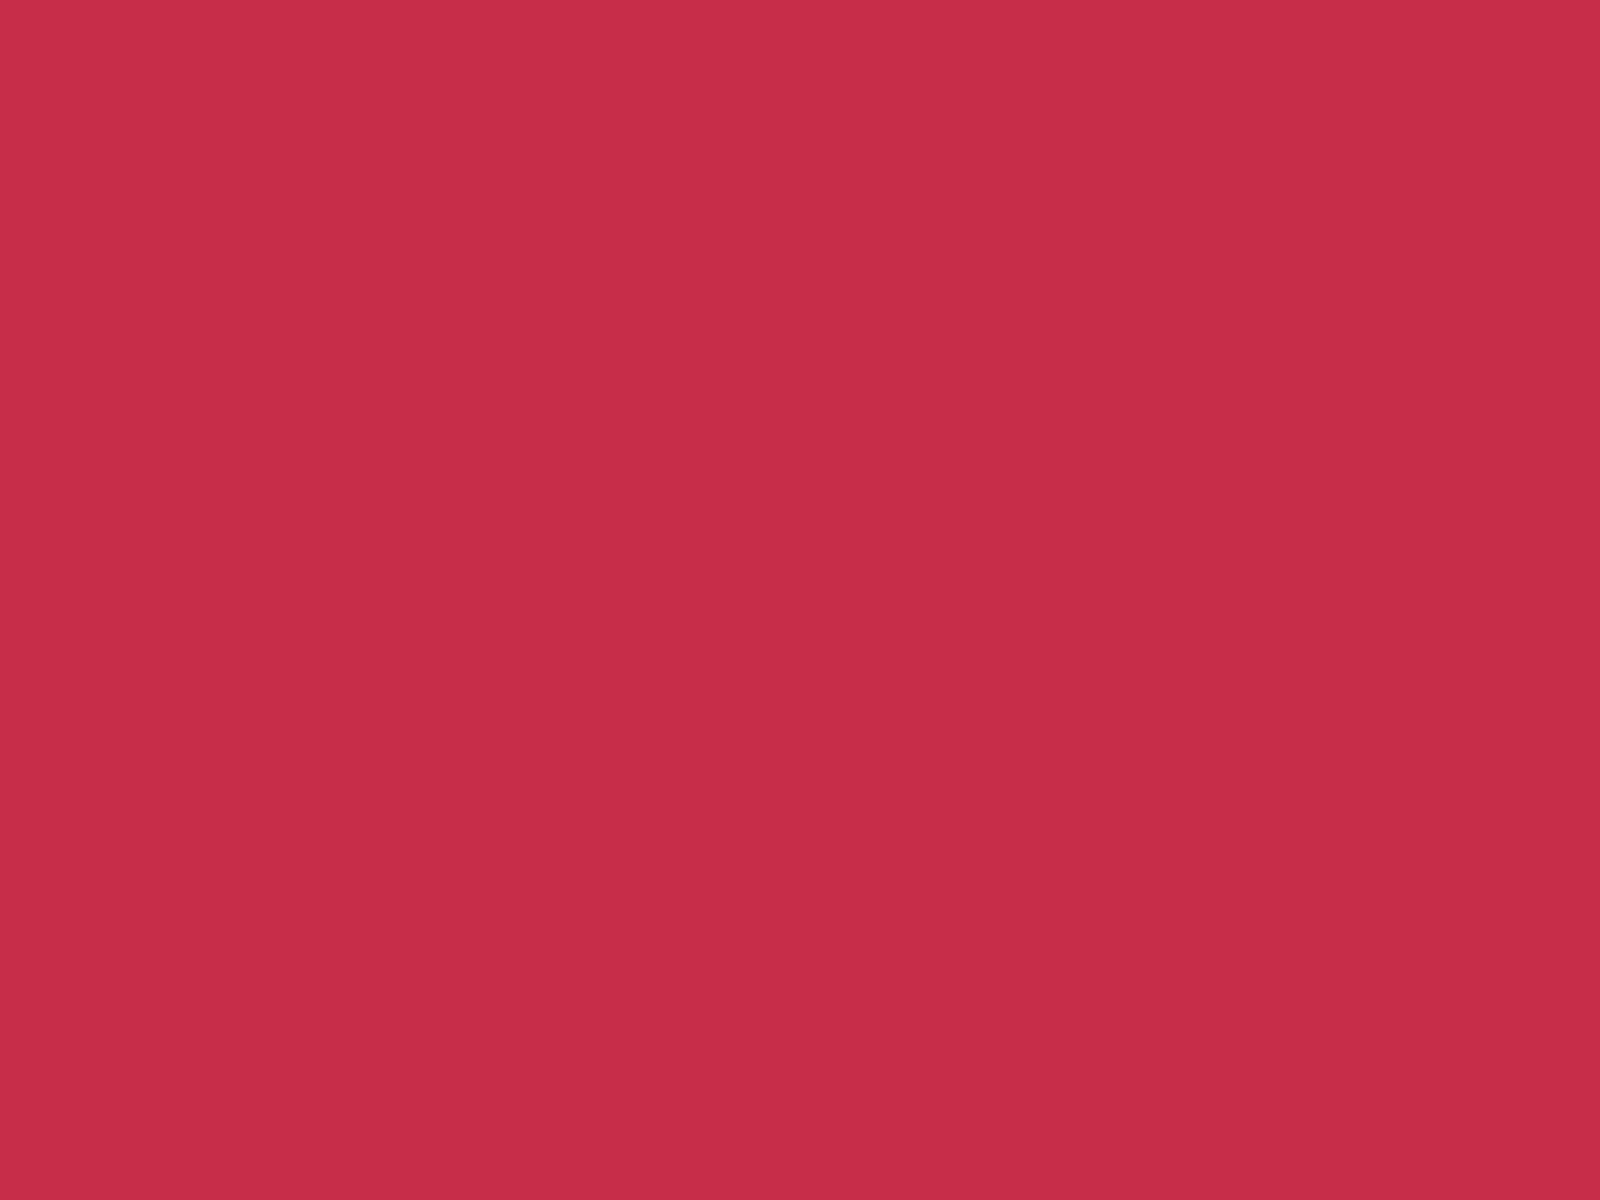 1600x1200 French Raspberry Solid Color Background